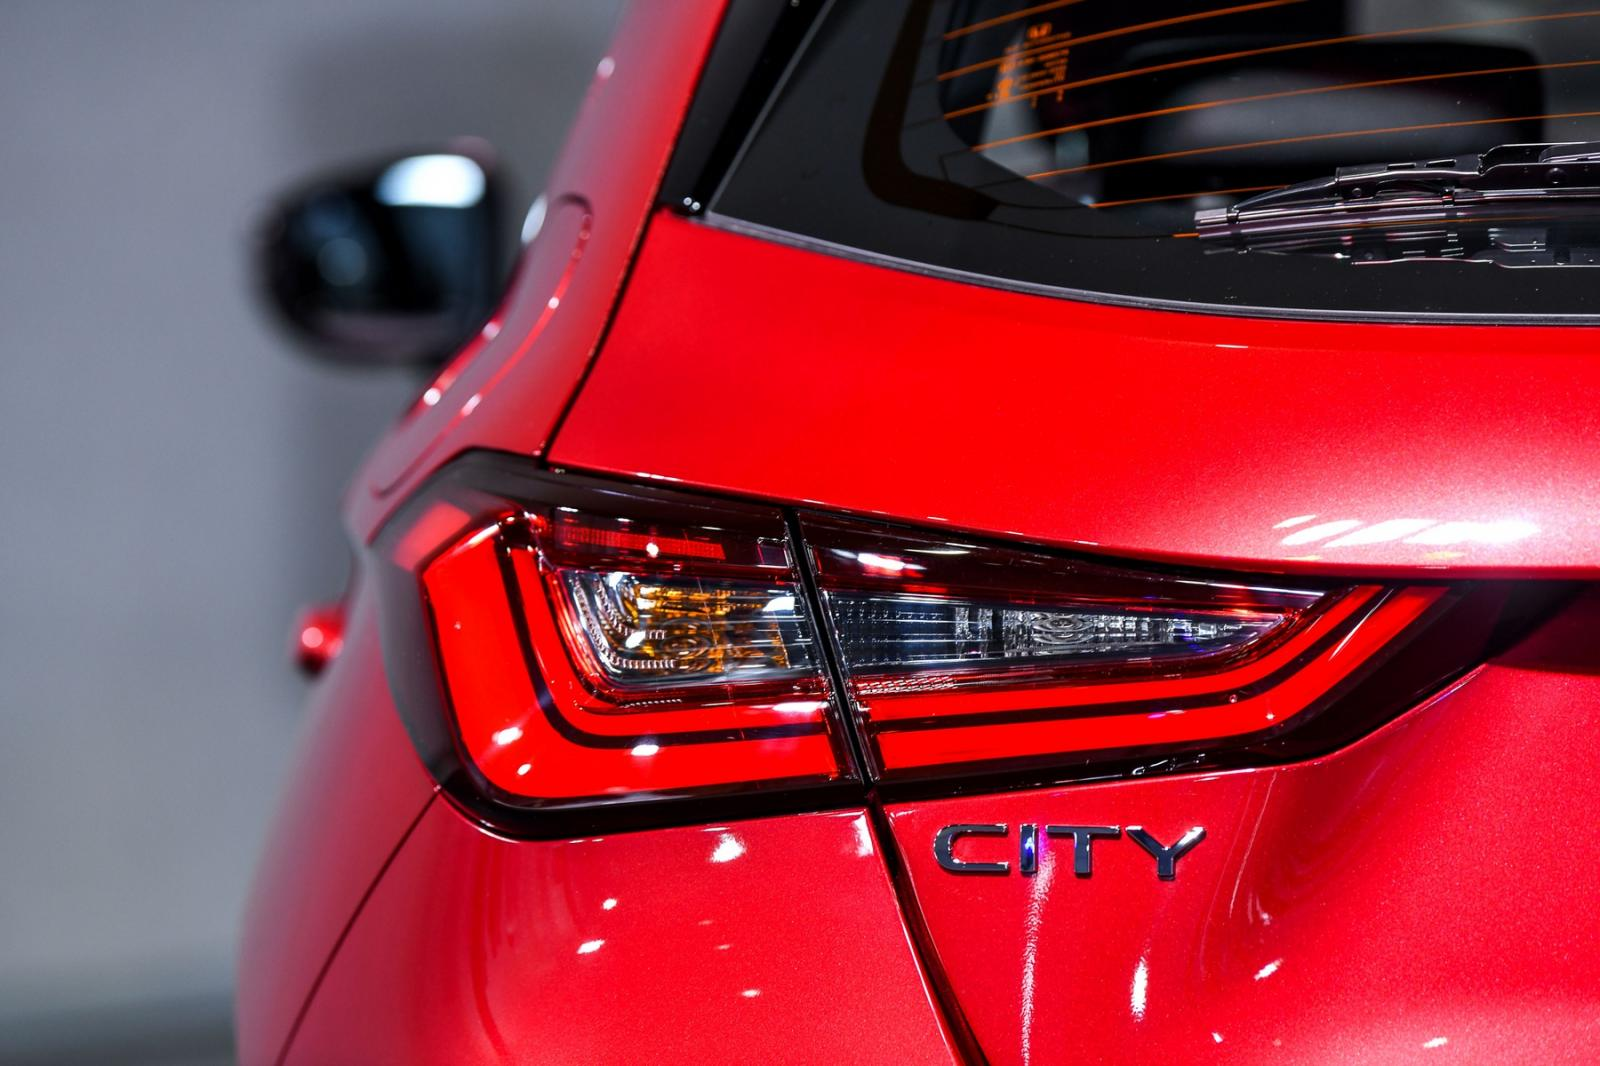 2021 Honda City Hatchback